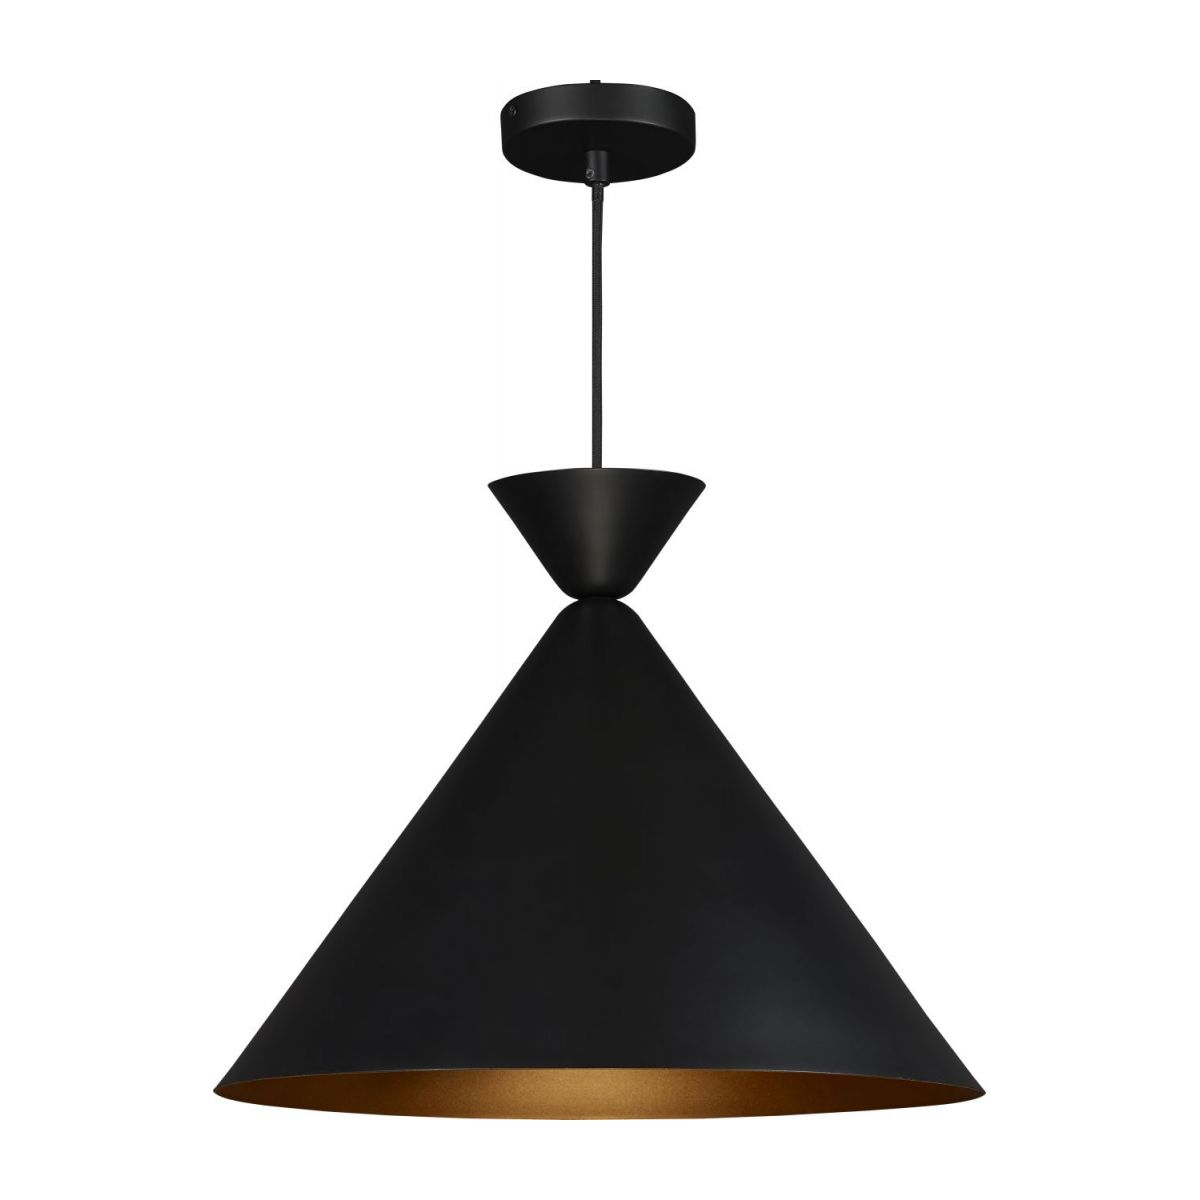 Triangular ceiling lamp, black and gold n°1